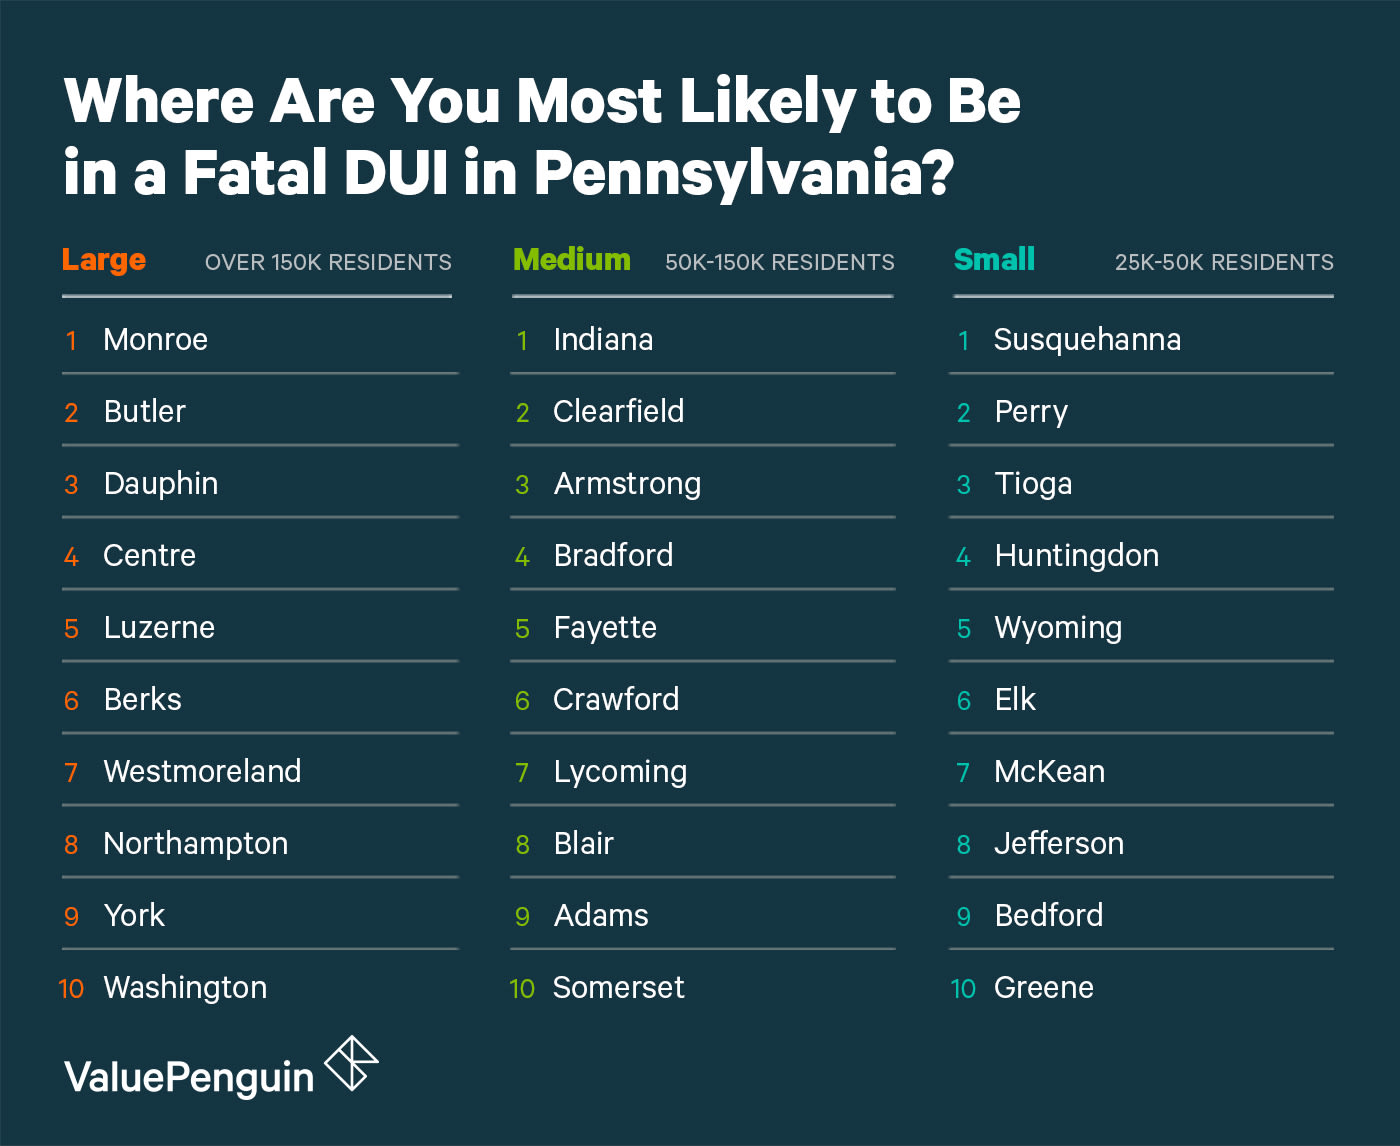 A Graphic of the Most Dangerous Cities in Pennsylvania for DUI Fatalities Grouped by Size